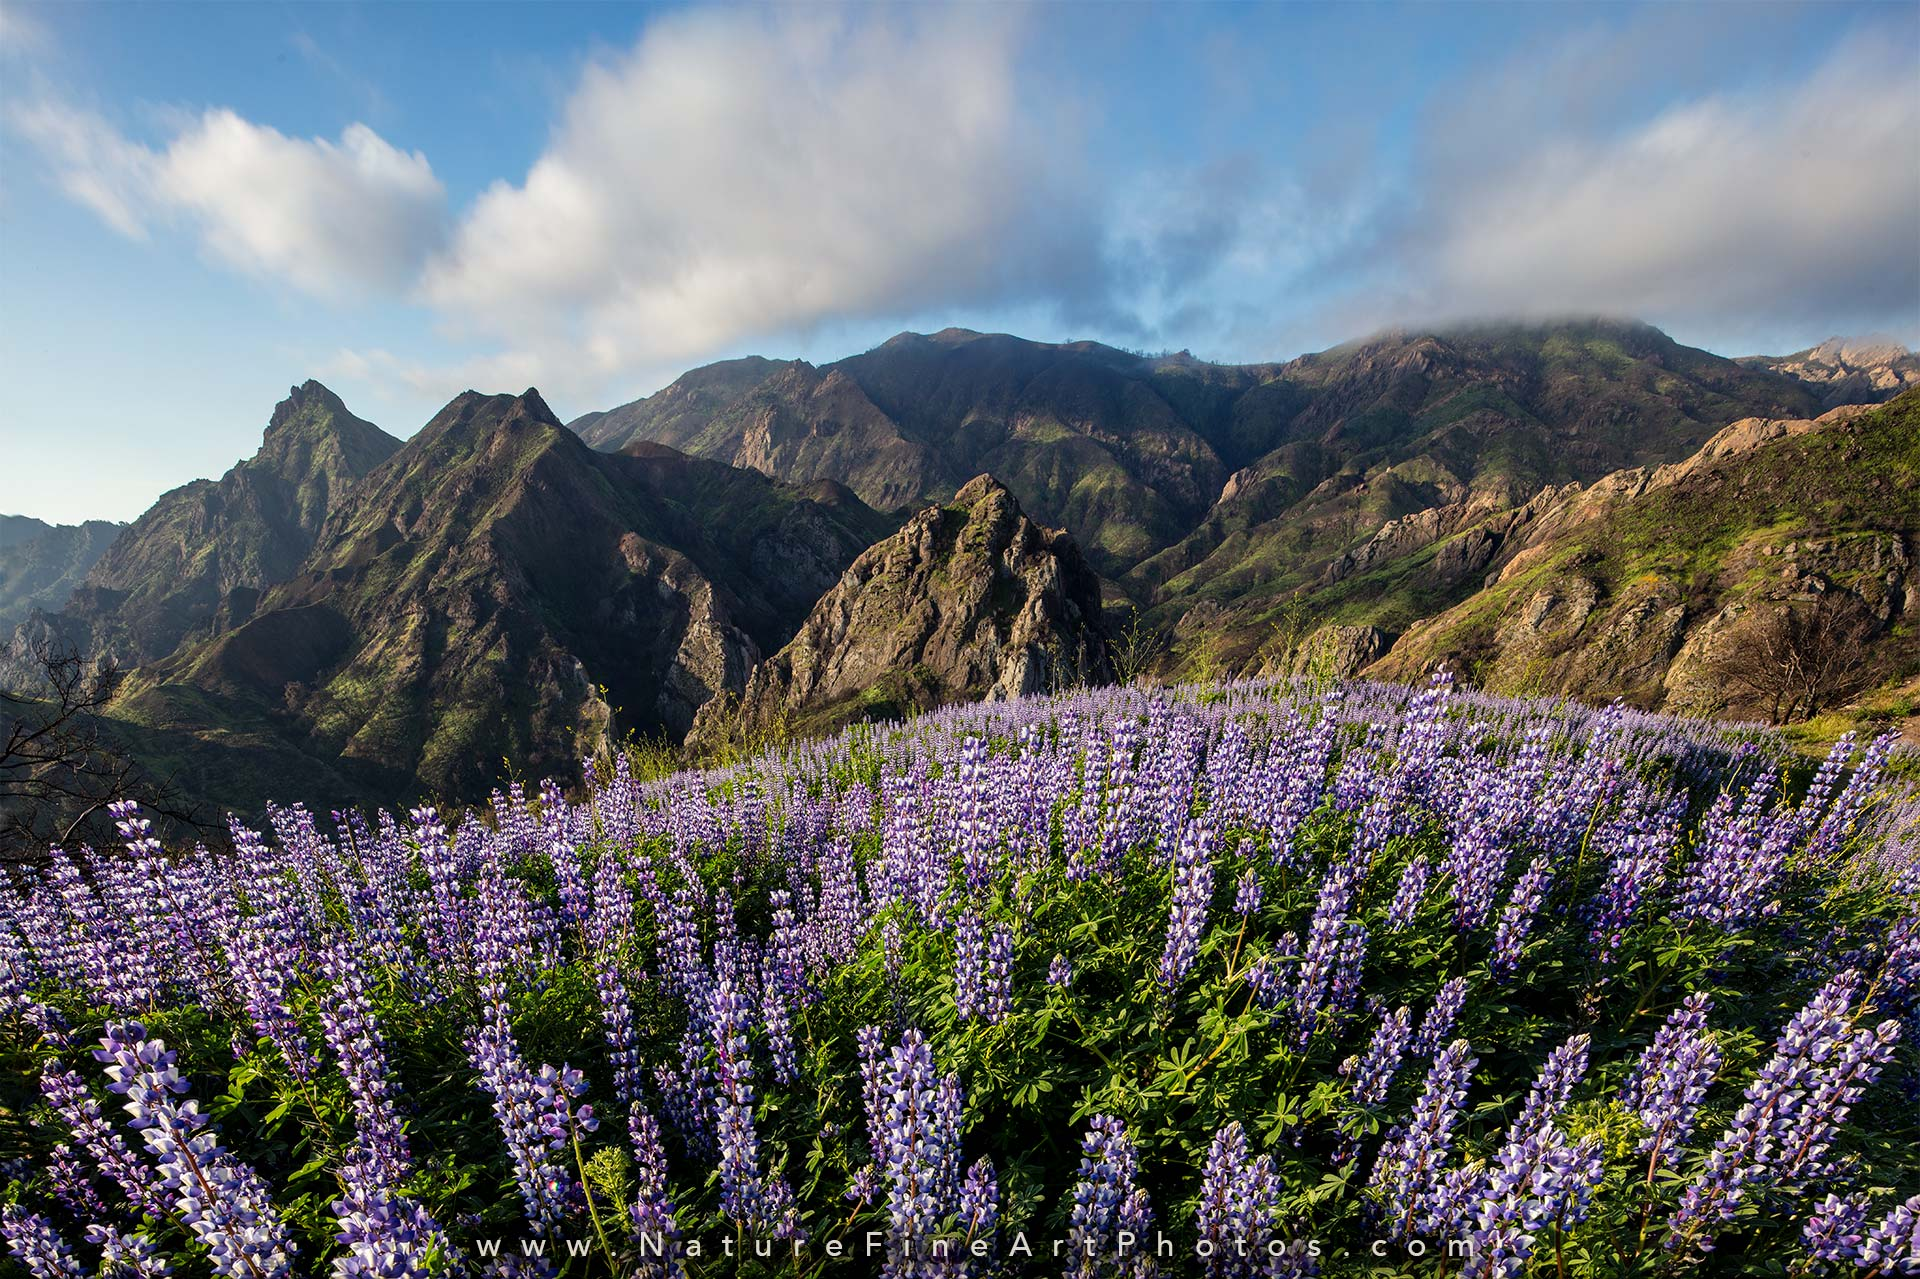 photo of lupine flowers